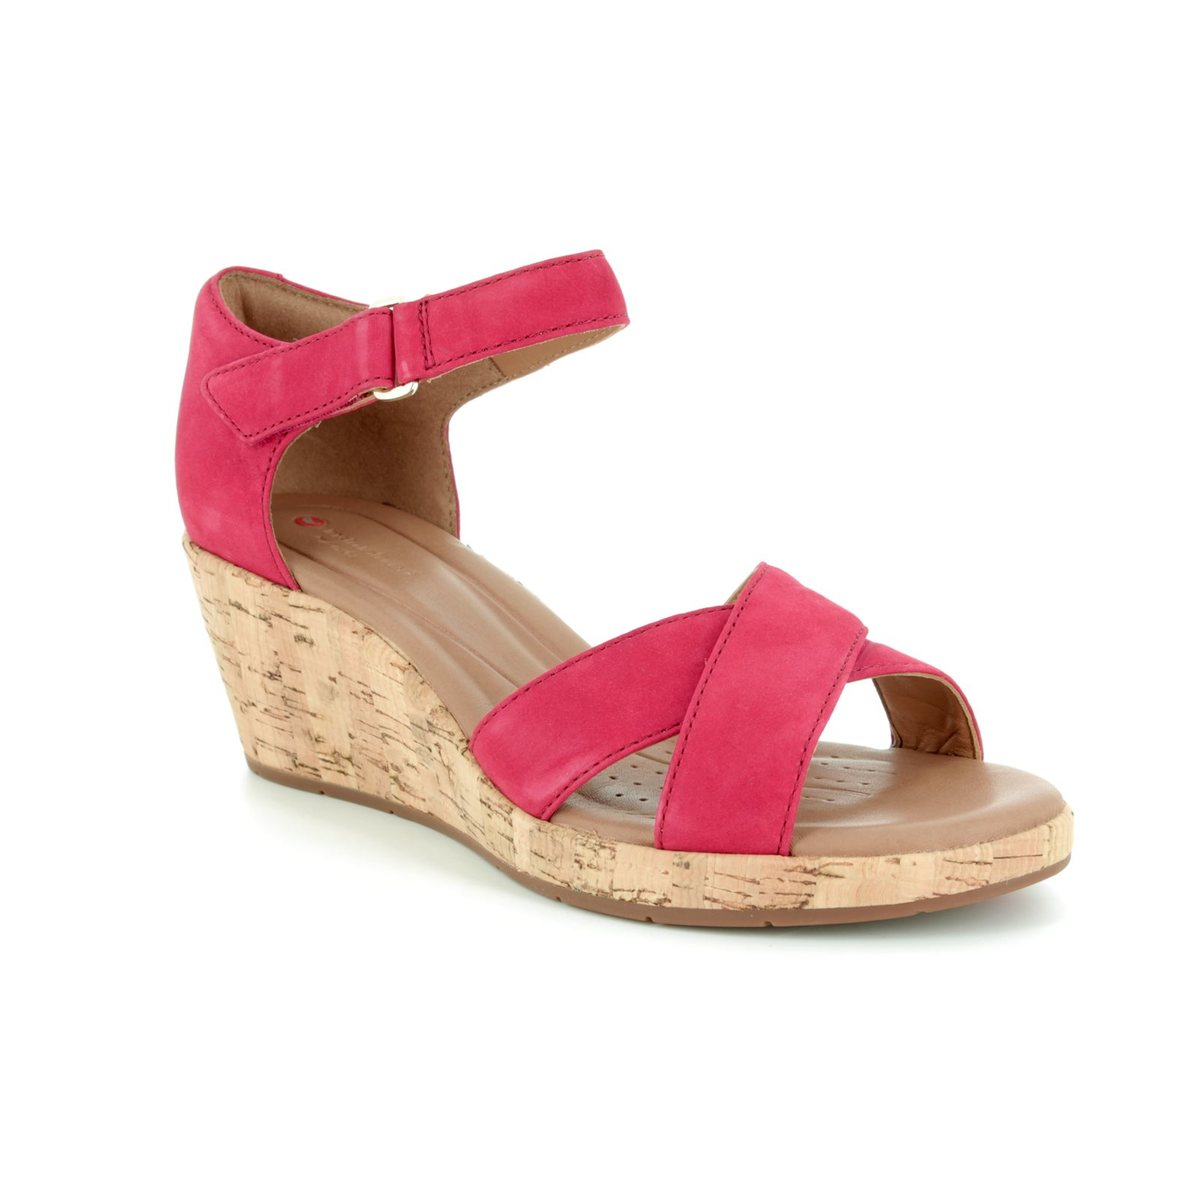 33abf21376e Clarks Wedge Sandals - Red - 3232 74D UN PLAZA CROSS